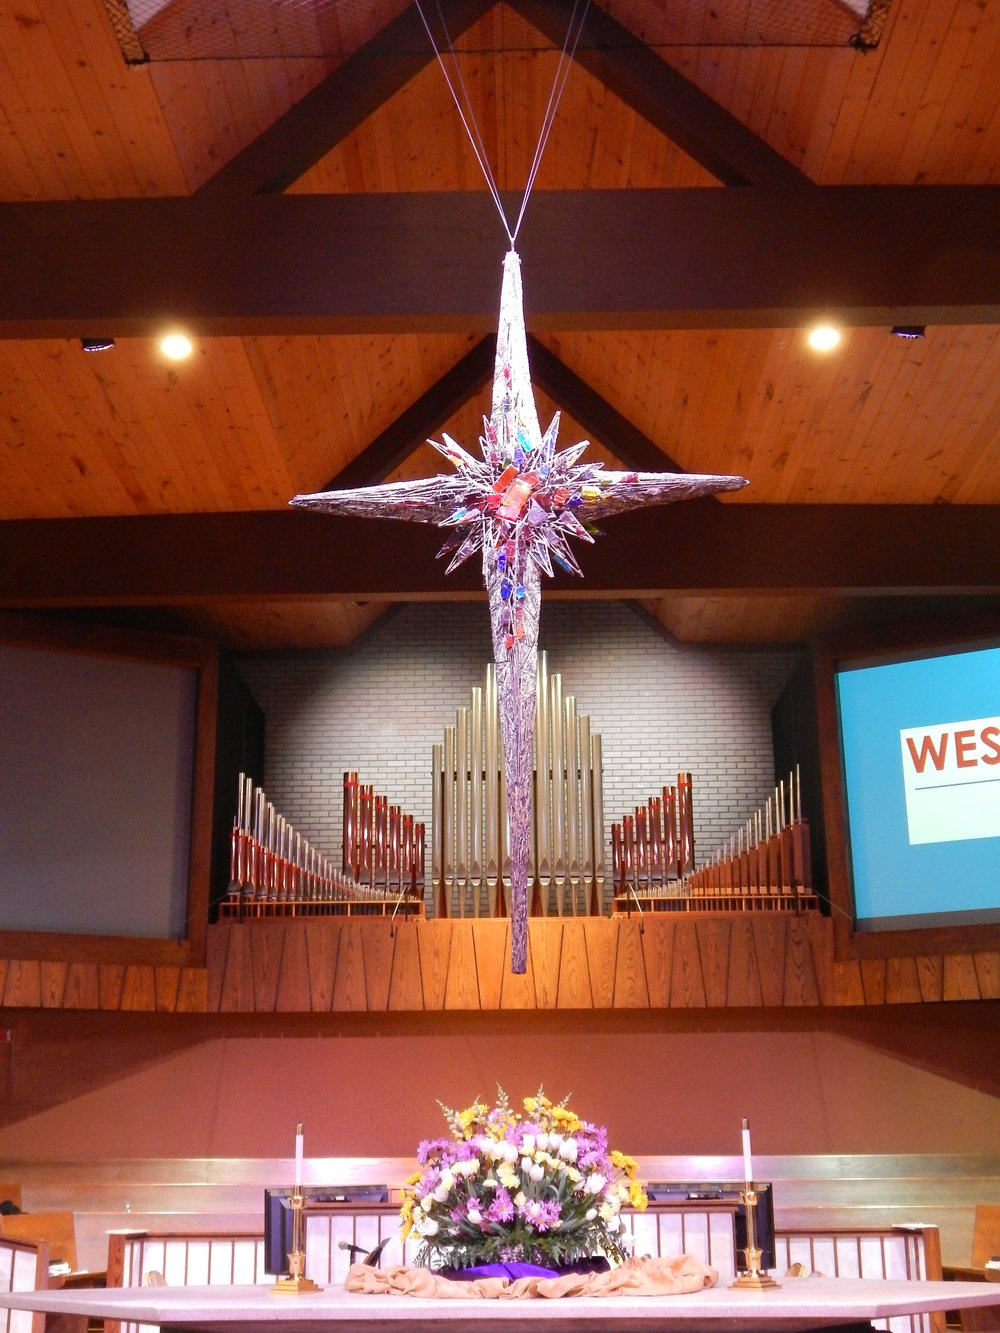 Sanctuary Symbolism West Heights United Methodist Church Preschool